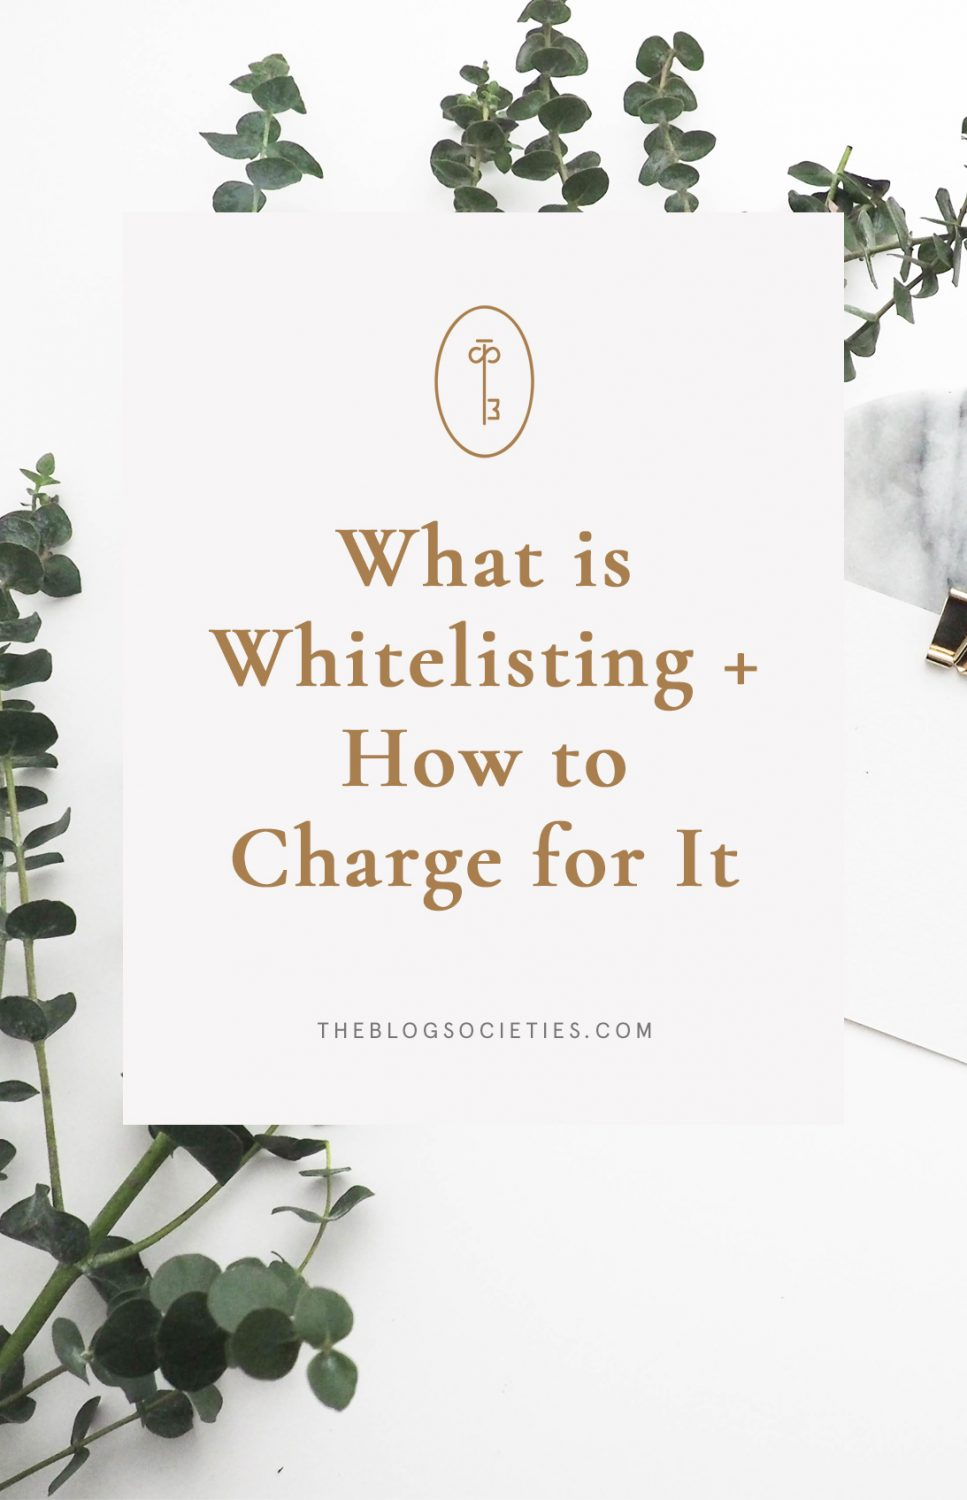 What Is Whitelisting + How to Charge for It | The Blog Societies